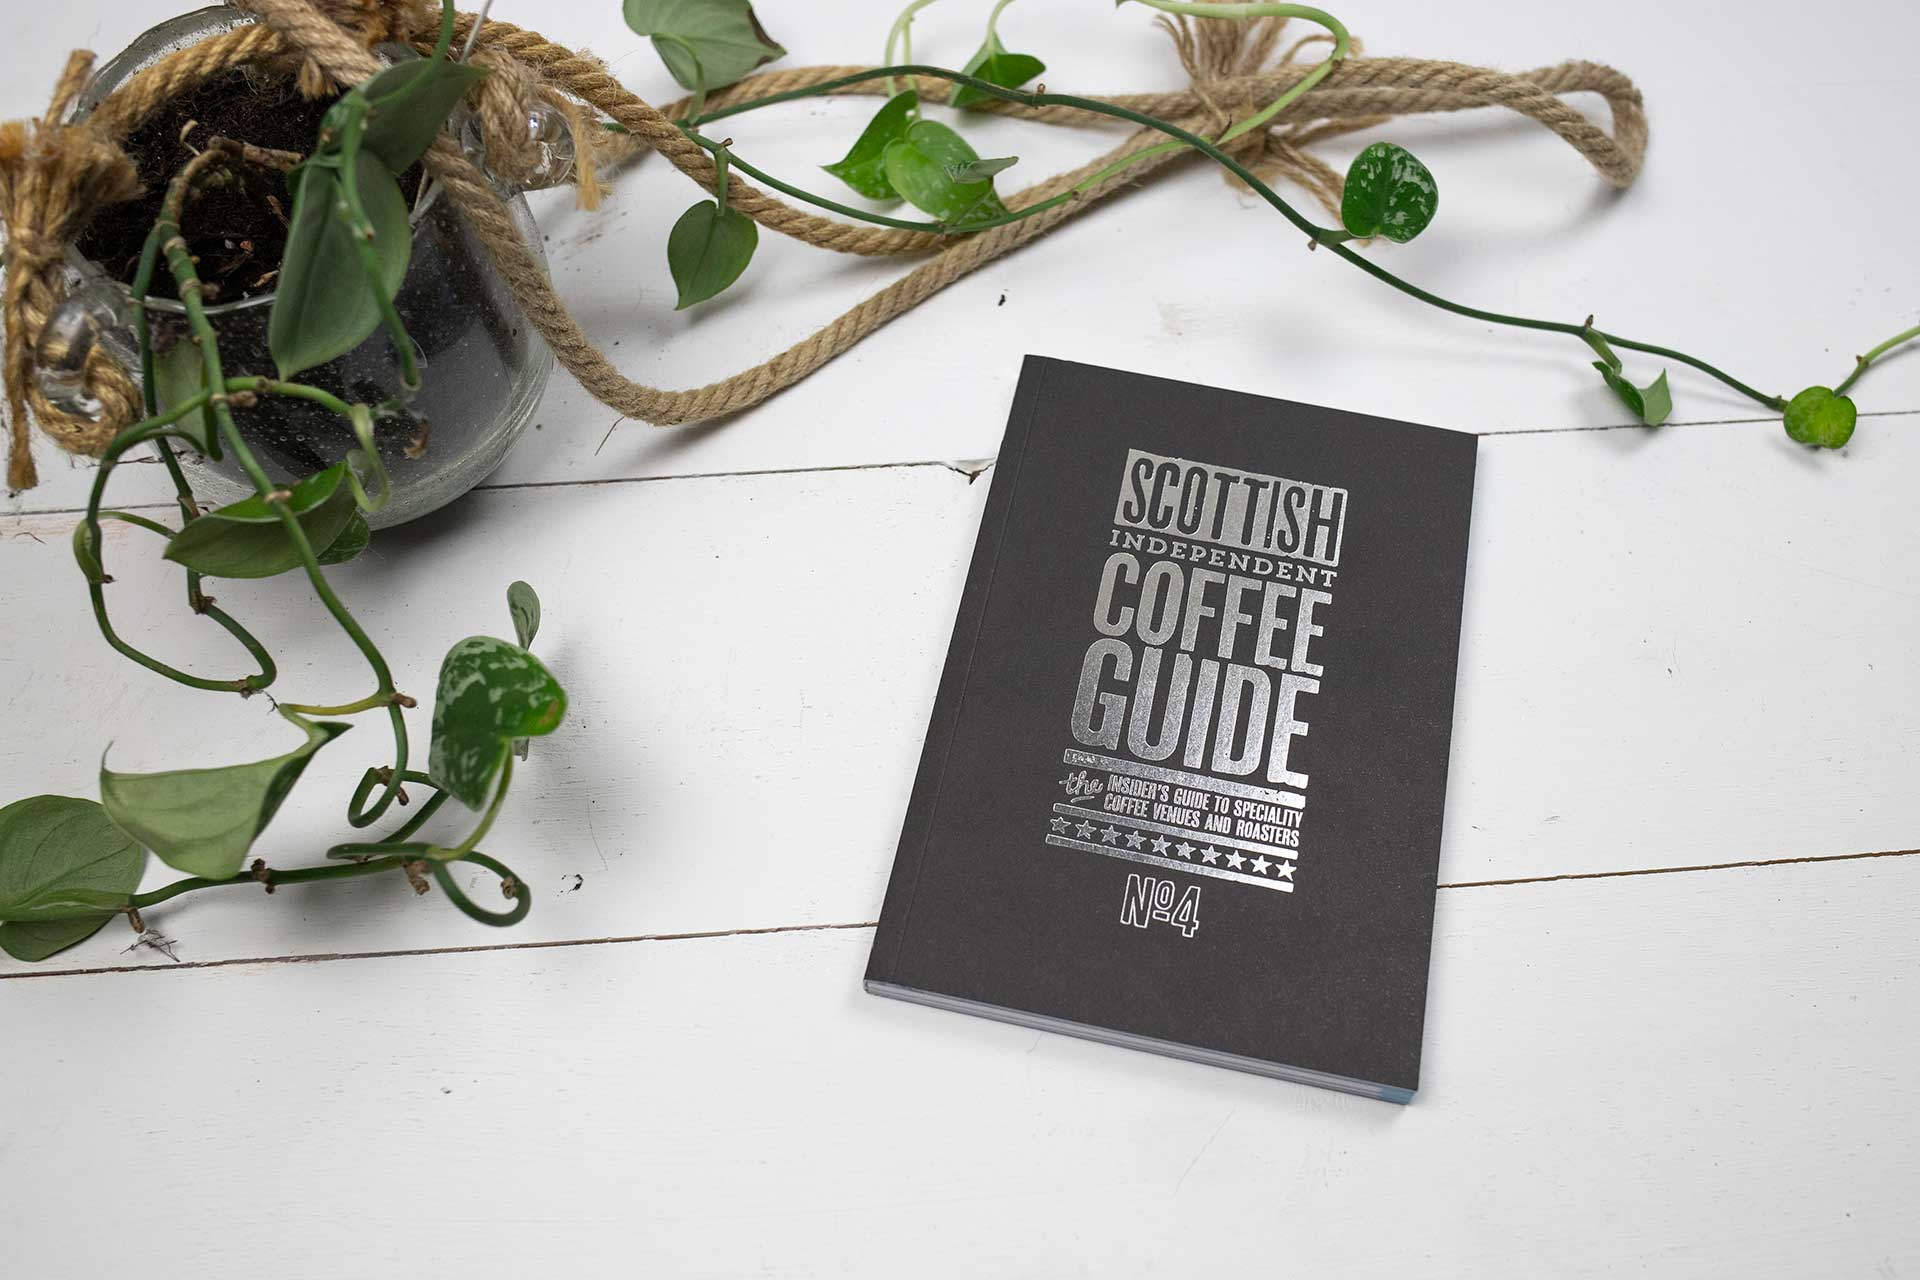 scottish indy coffee guide No4 cover